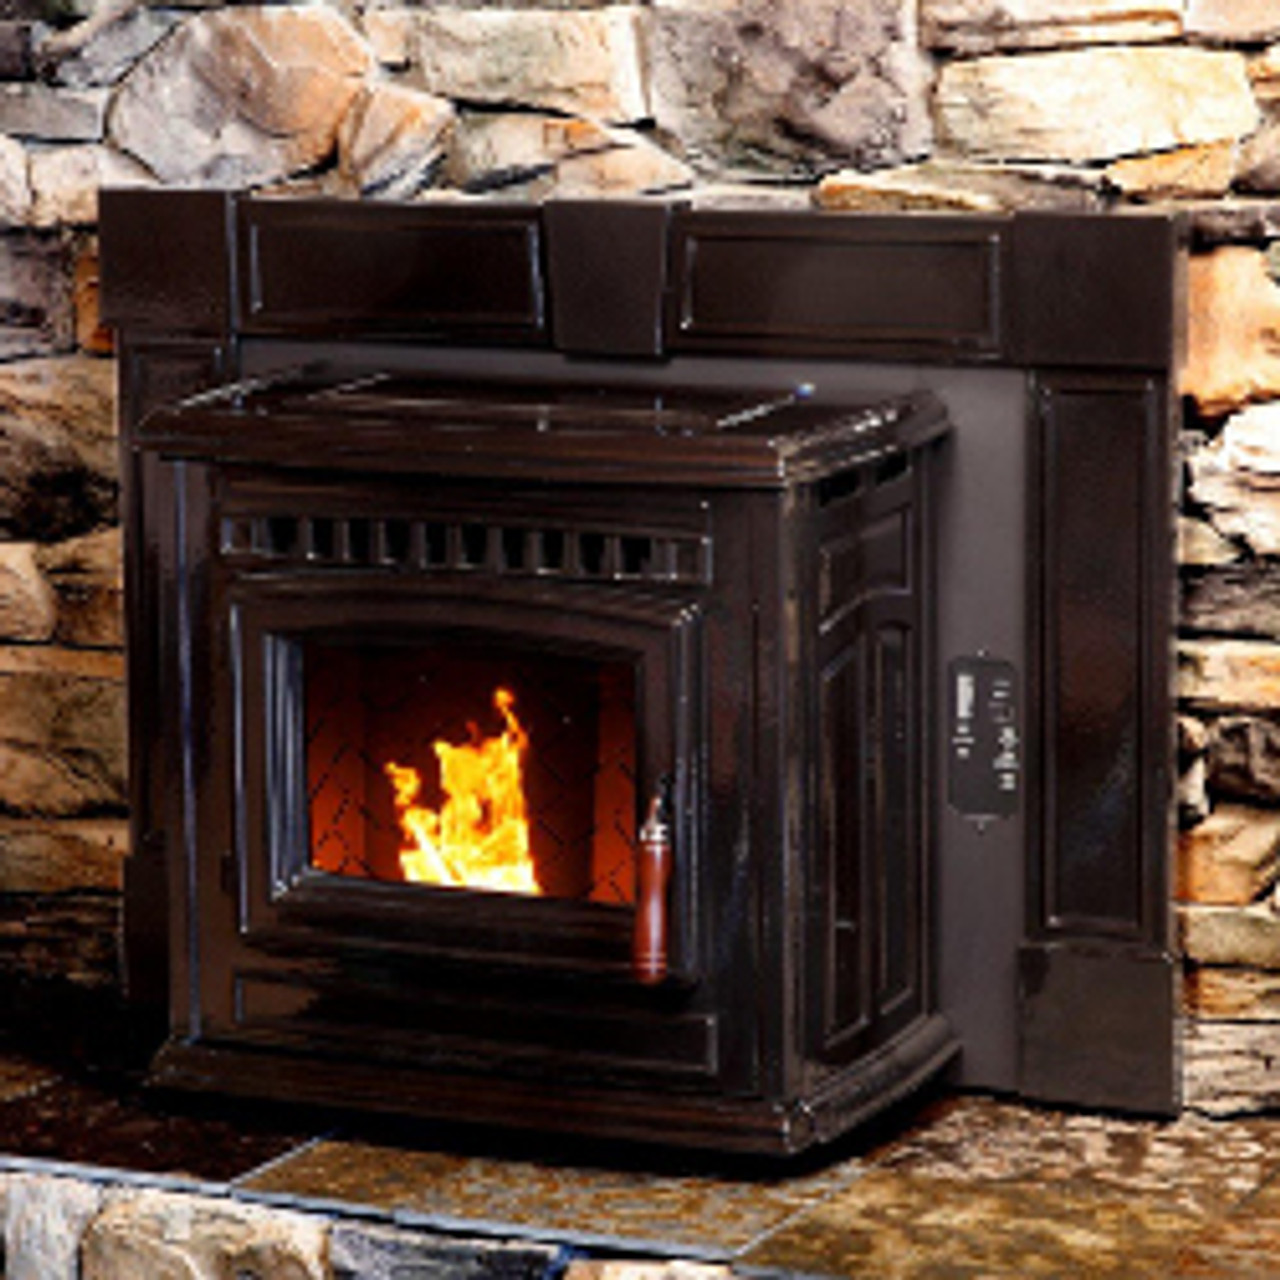 Hudson River Stove Works Chatham Fireplace Insert